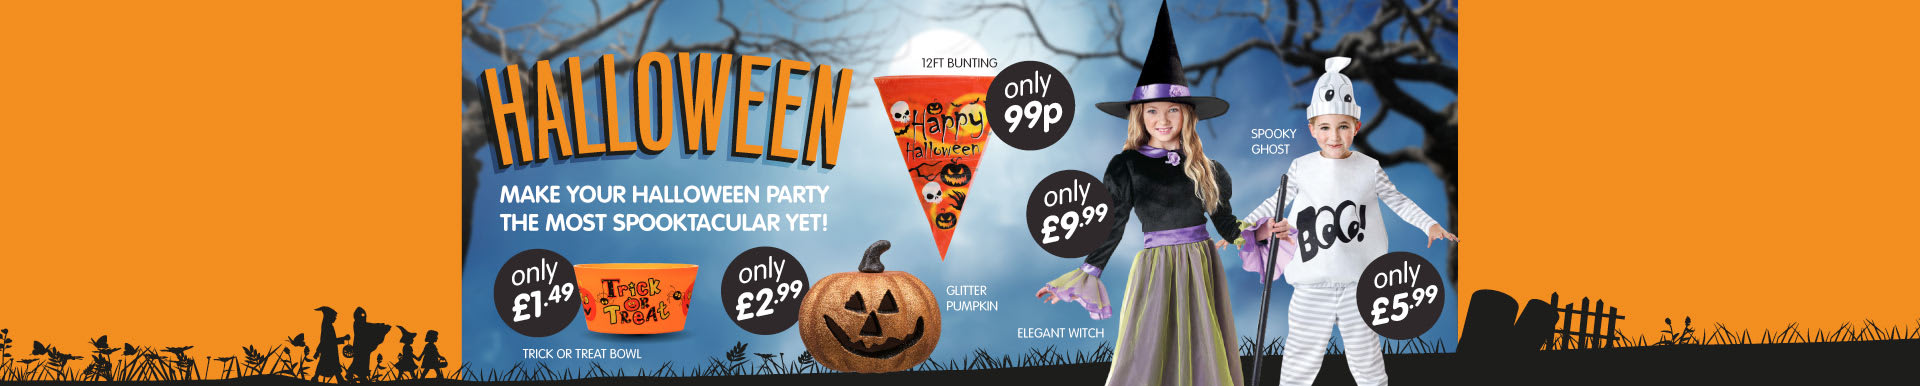 Browse B&M's spooky range of Halloween costumes and decorations.